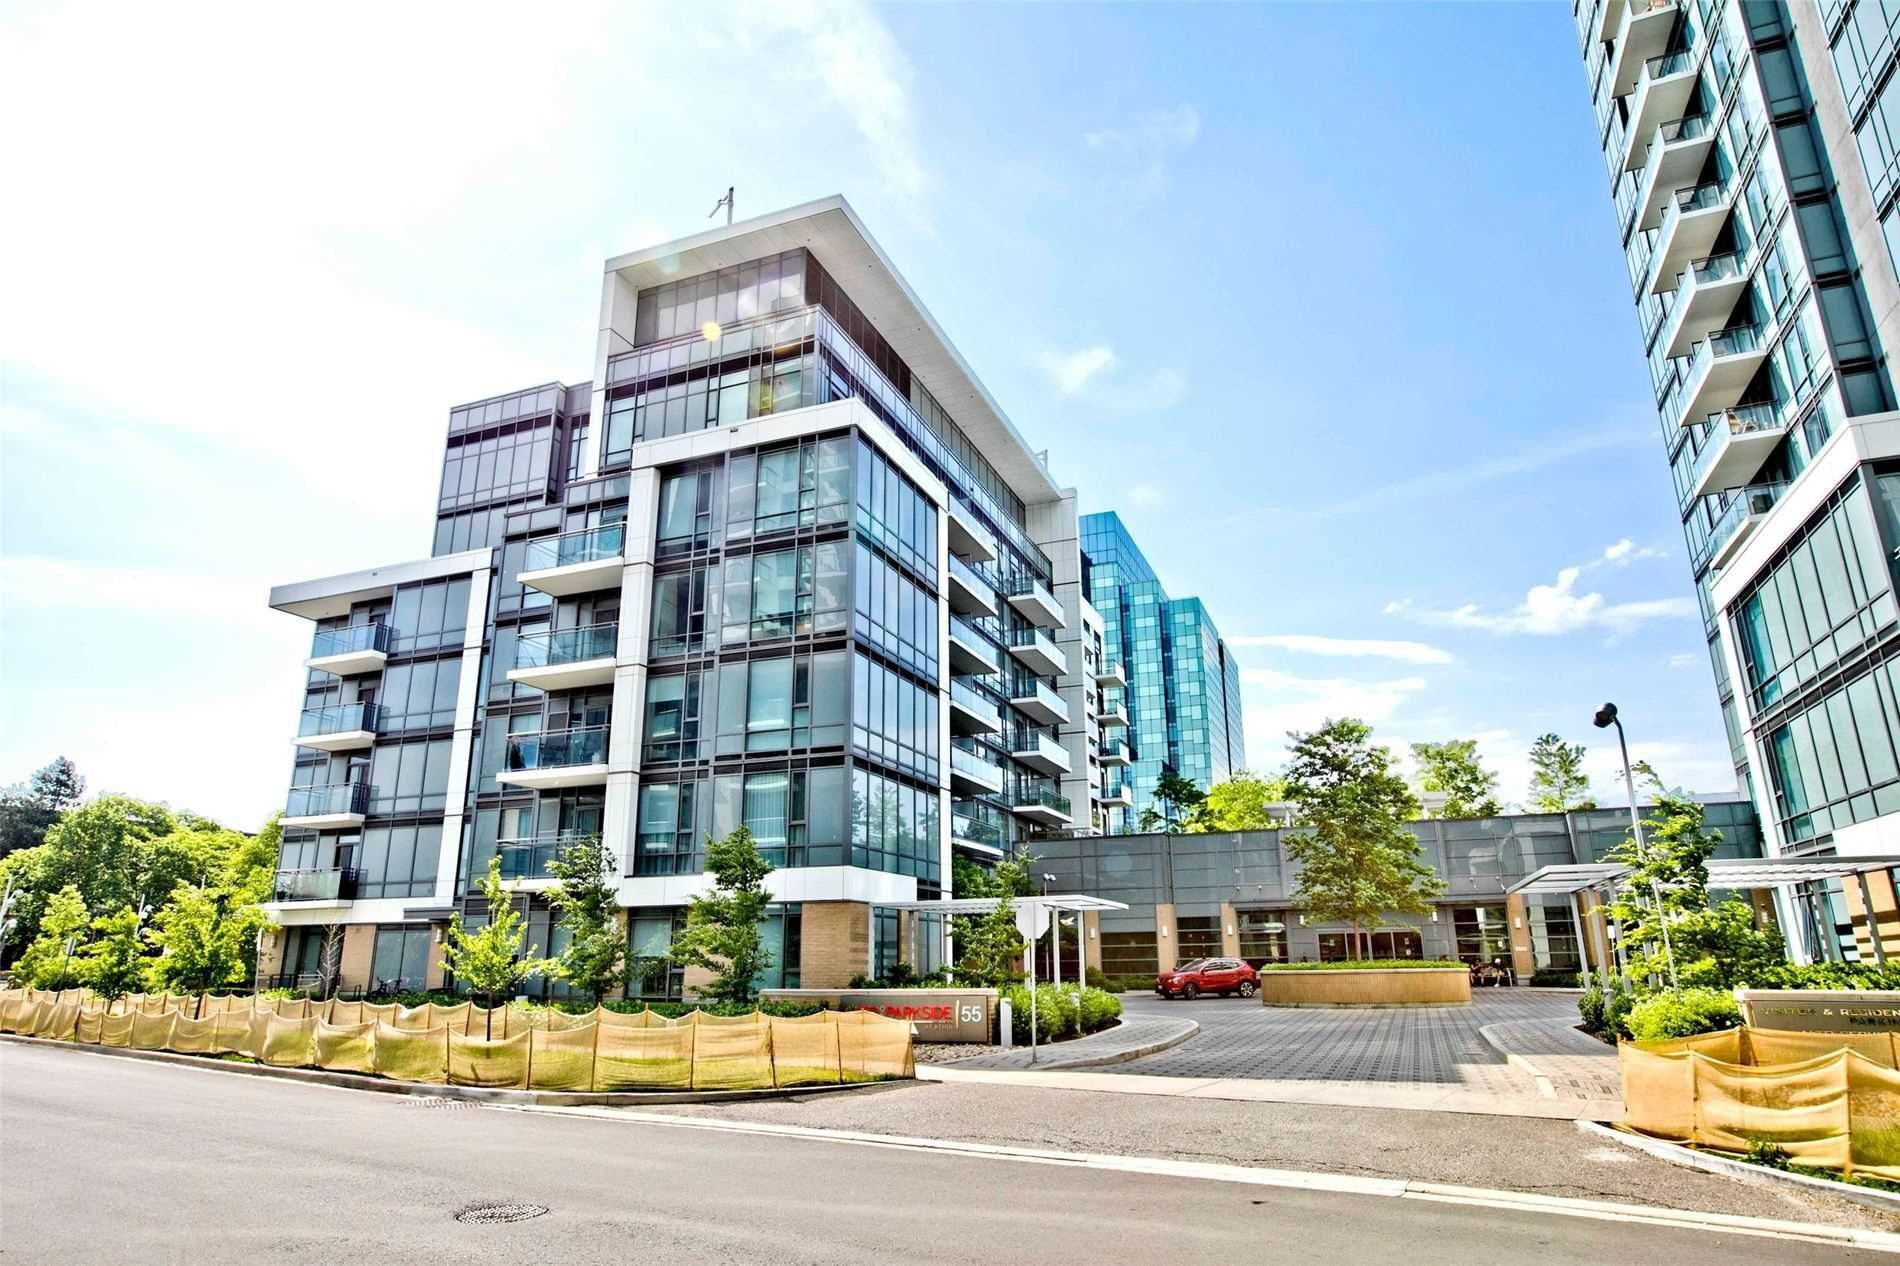 55 Ann O'reilly Rd, unit 1408 for rent in Toronto - image #2